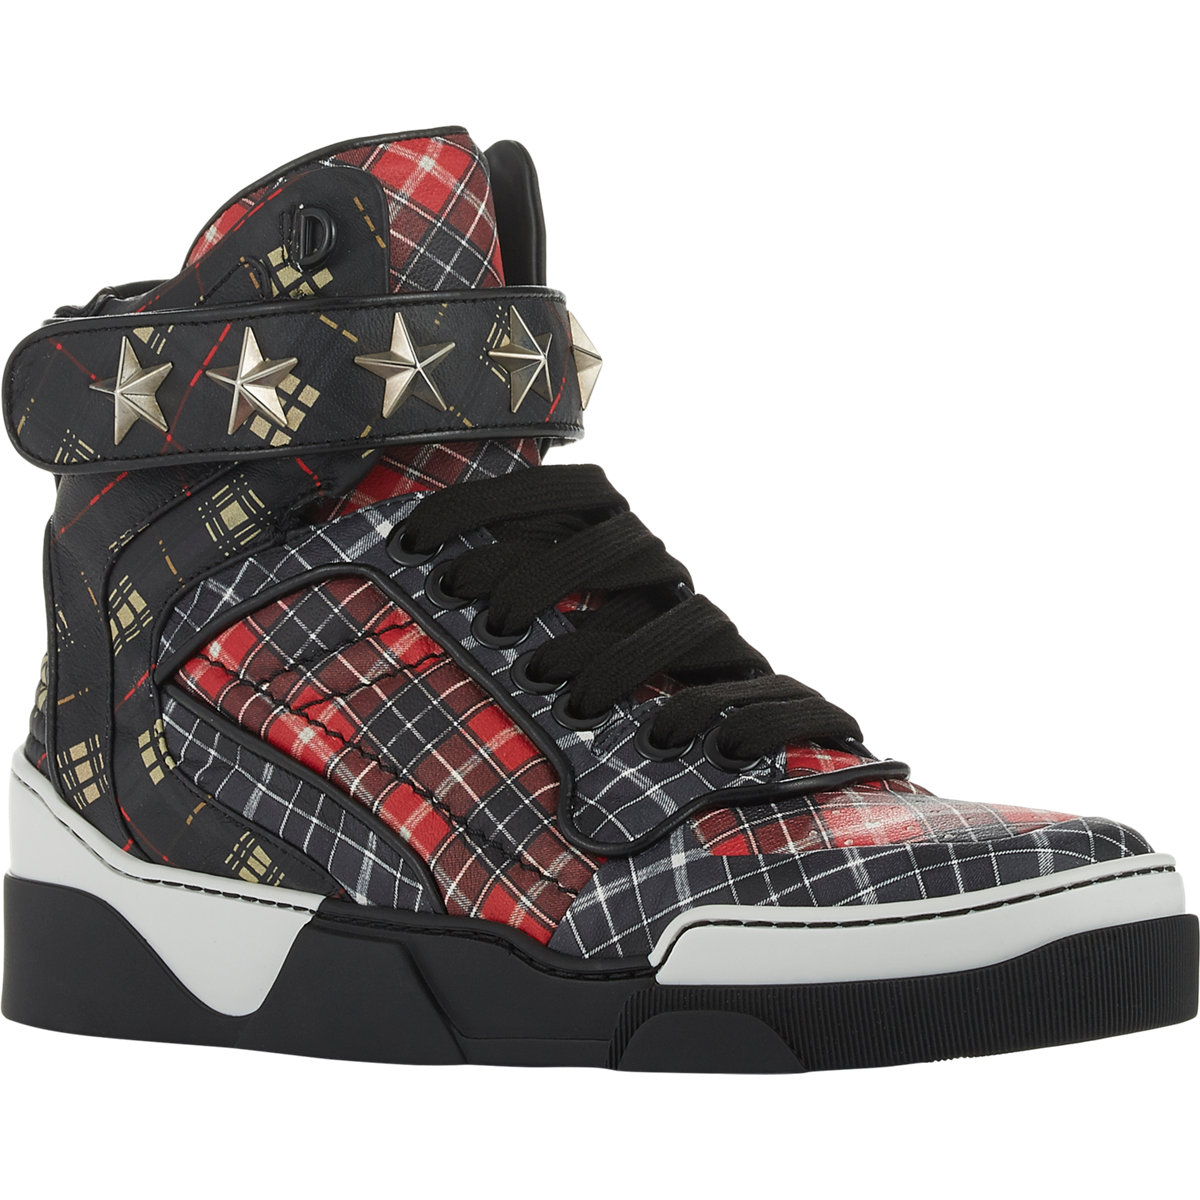 Givenchy Tyson Hi Top Sneakers In Red For Men Lyst